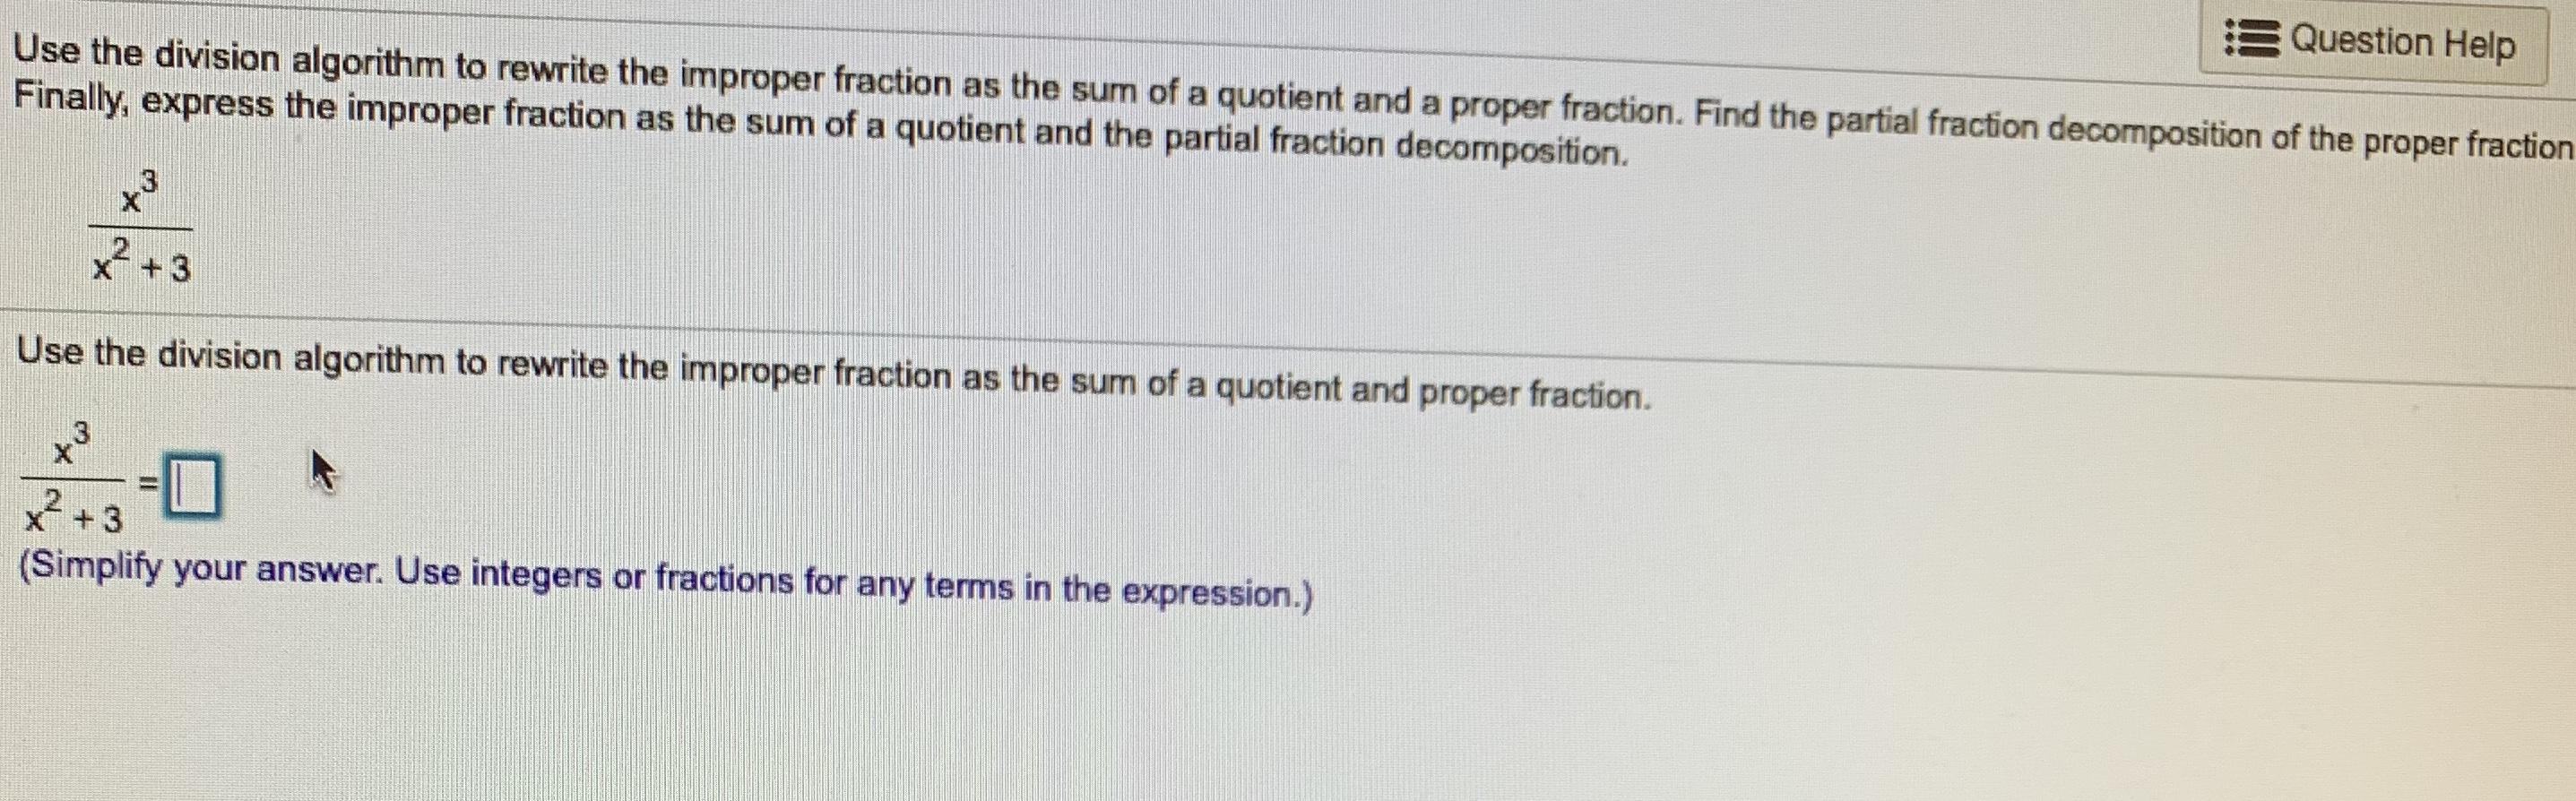 Question Help Use the division algorithm to rewrite the improper fraction as the sum of a quotient and a proper fraction. Find the partial fraction decomposition of the proper fraction Finally, express the improper fraction as the sum of a quotient and the partial fraction decomposition. 2+3 Use the division algorithm to rewrite the improper fraction as the sum of a quotient and proper fraction. C3 XT 3 (Simplify your answer. Use integers or fractions for any terms in the expression.)